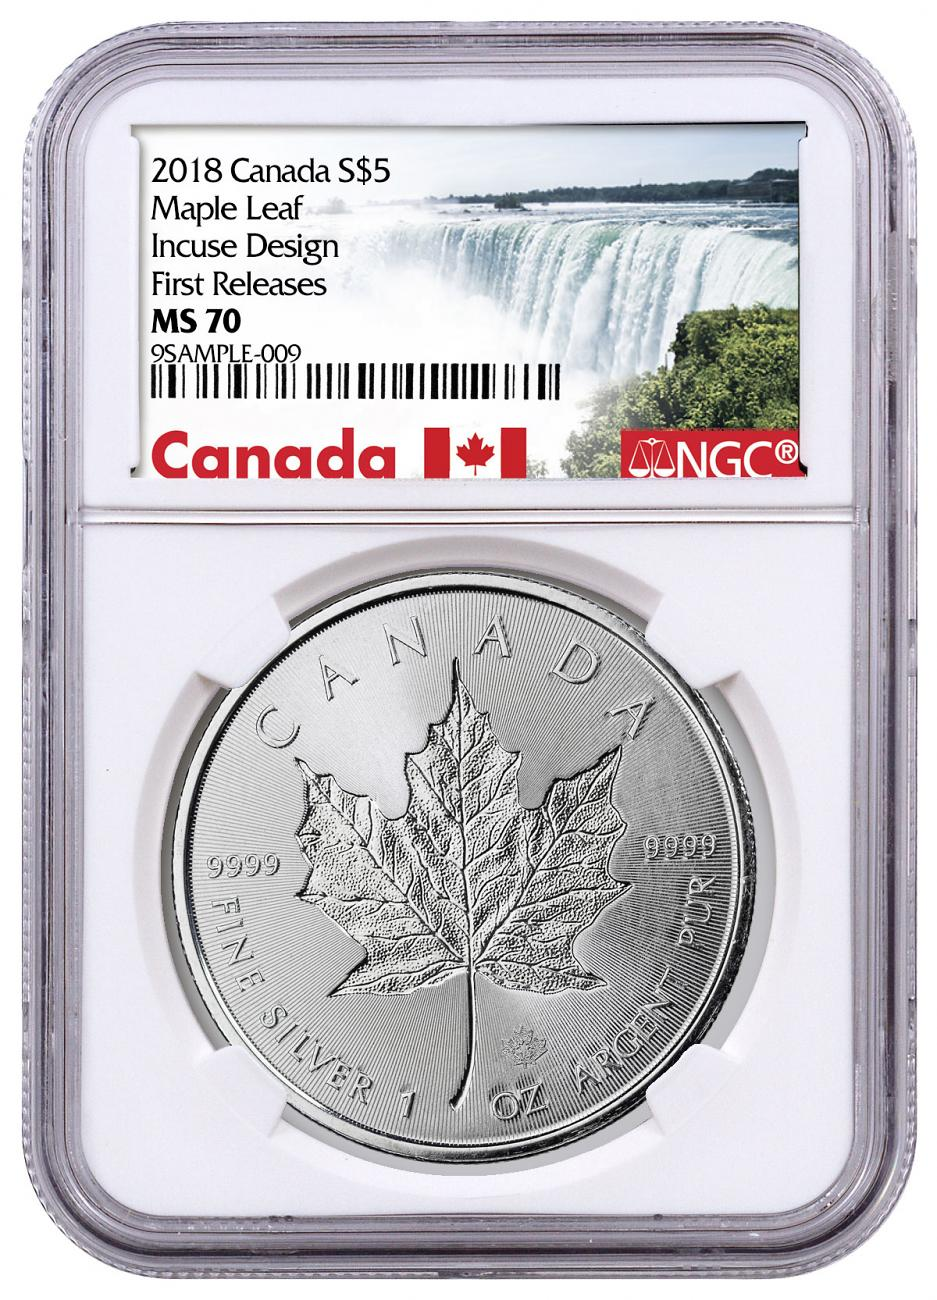 2018 Canada 1 oz Silver Maple Leaf - Incuse $5 Coin NGC MS70 FR Exclusive Canada Label